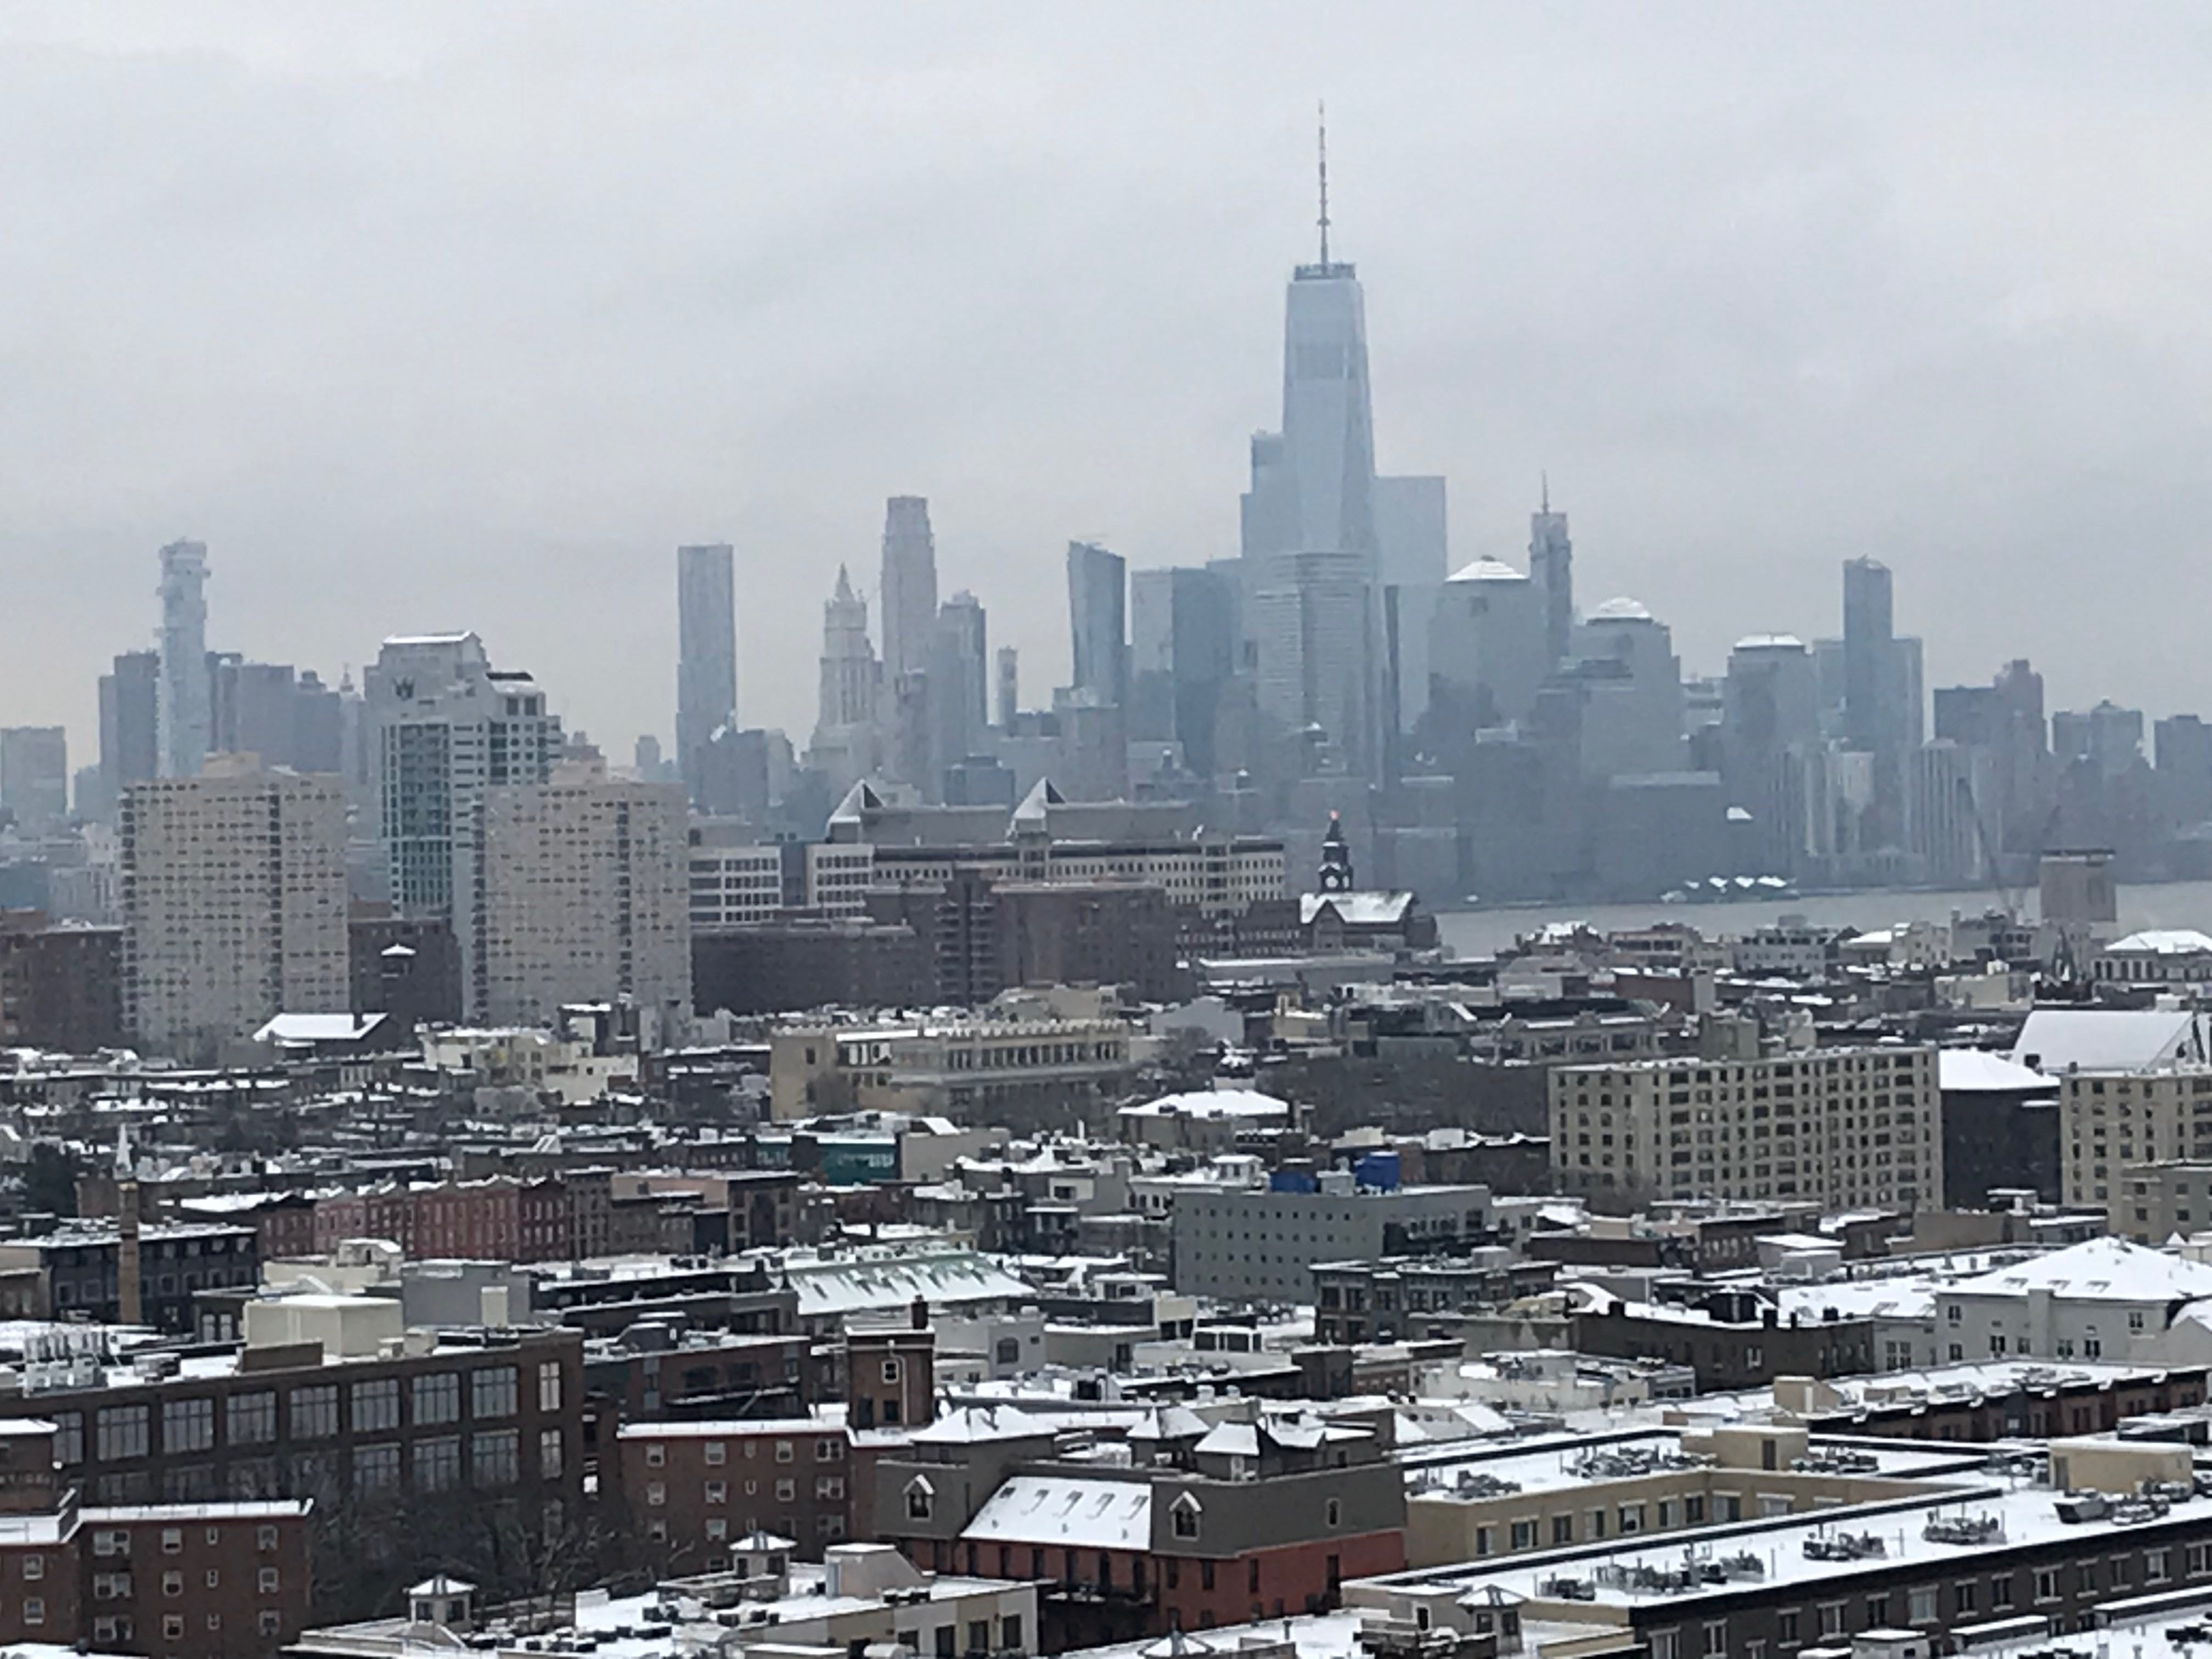 Dawn breaks on a snow-capped North Jersey with the World Trade Center and the lower Manhattan skyline in the background.